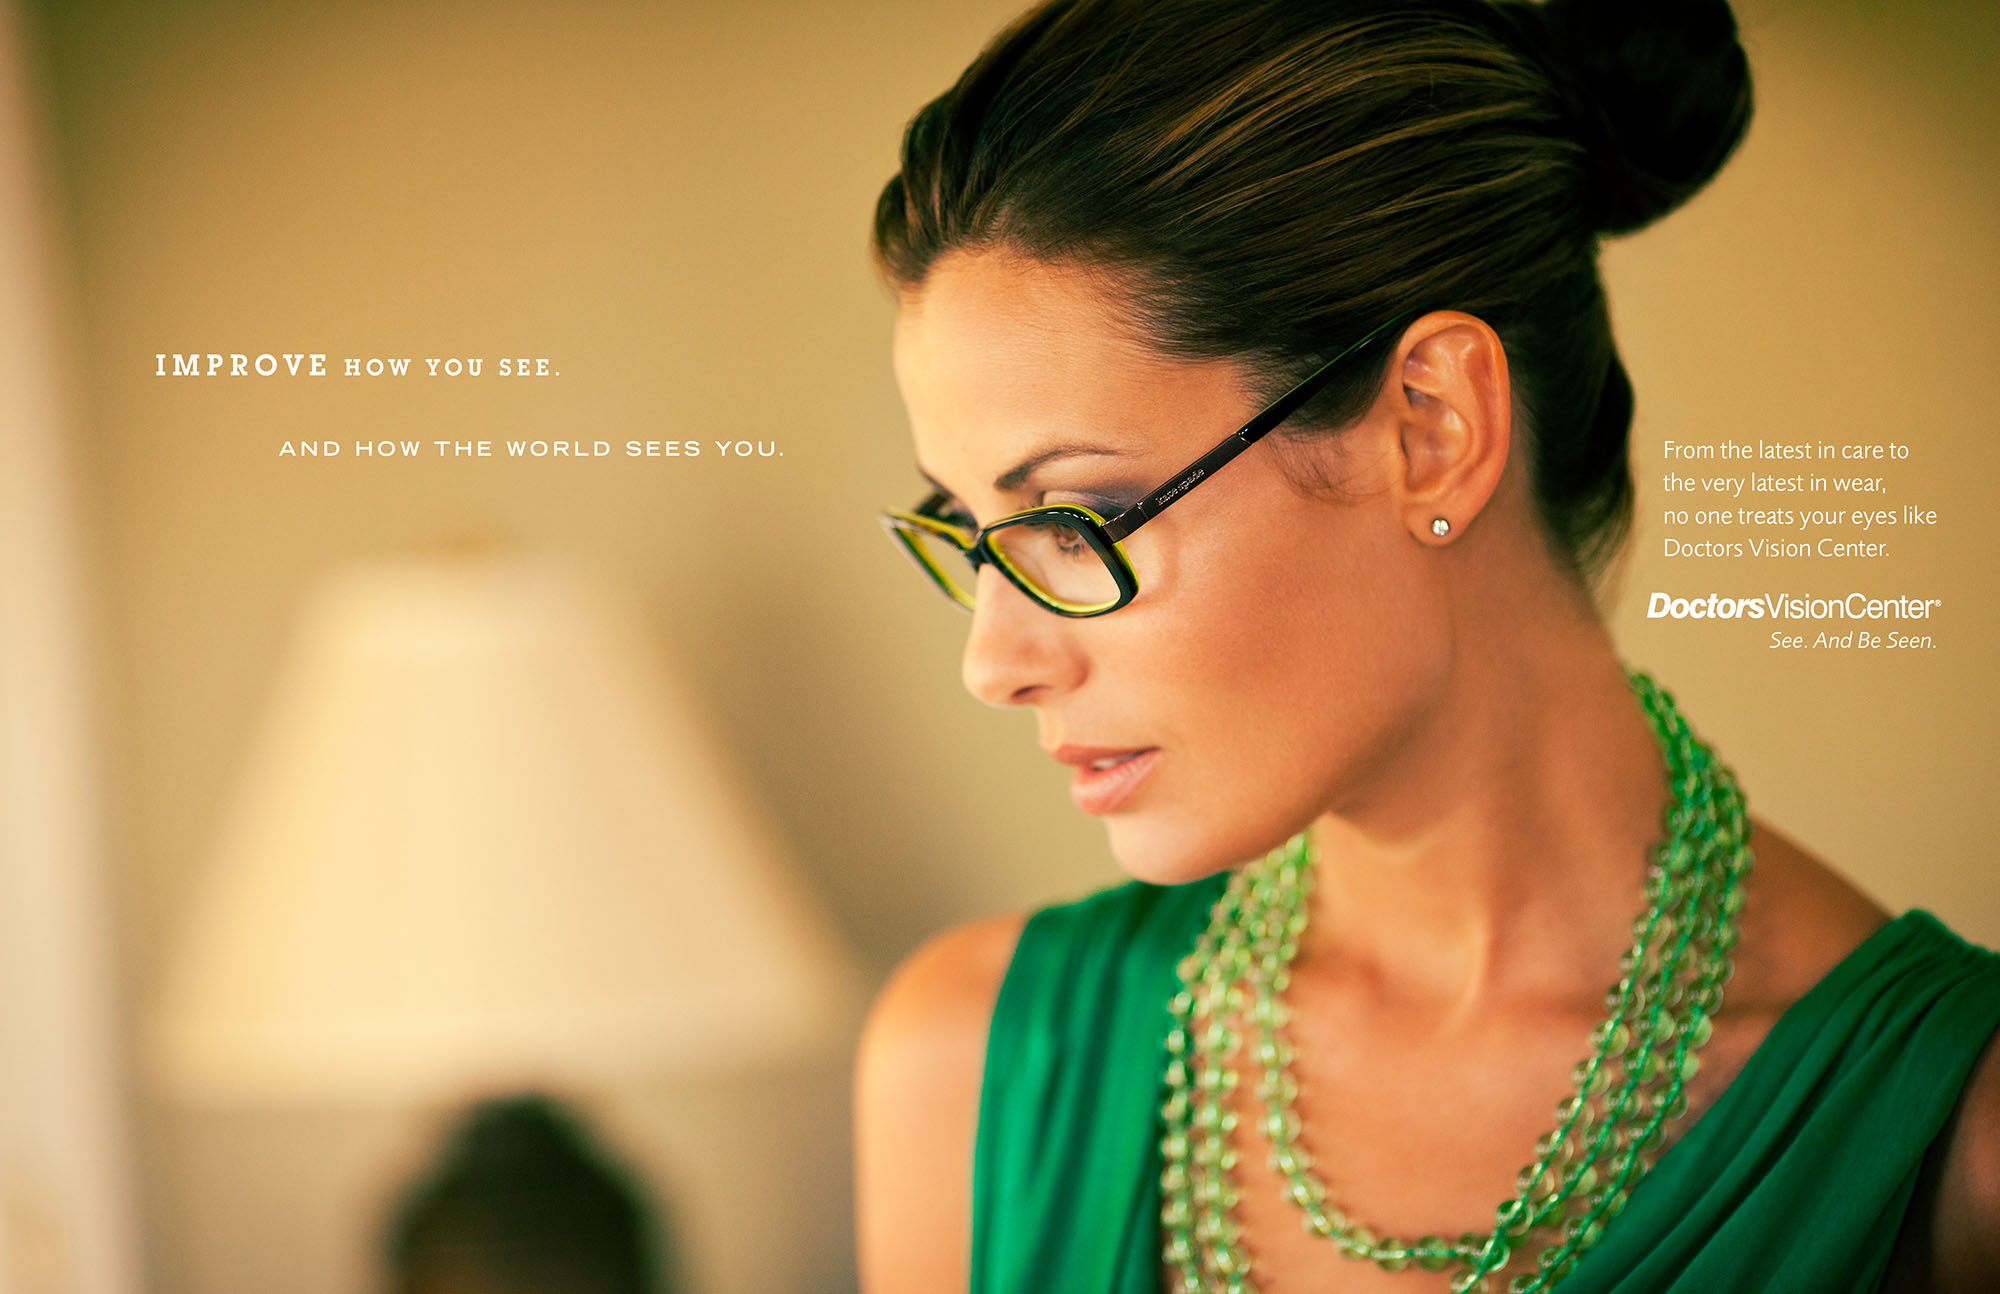 Doctors Vision Center Print Ad